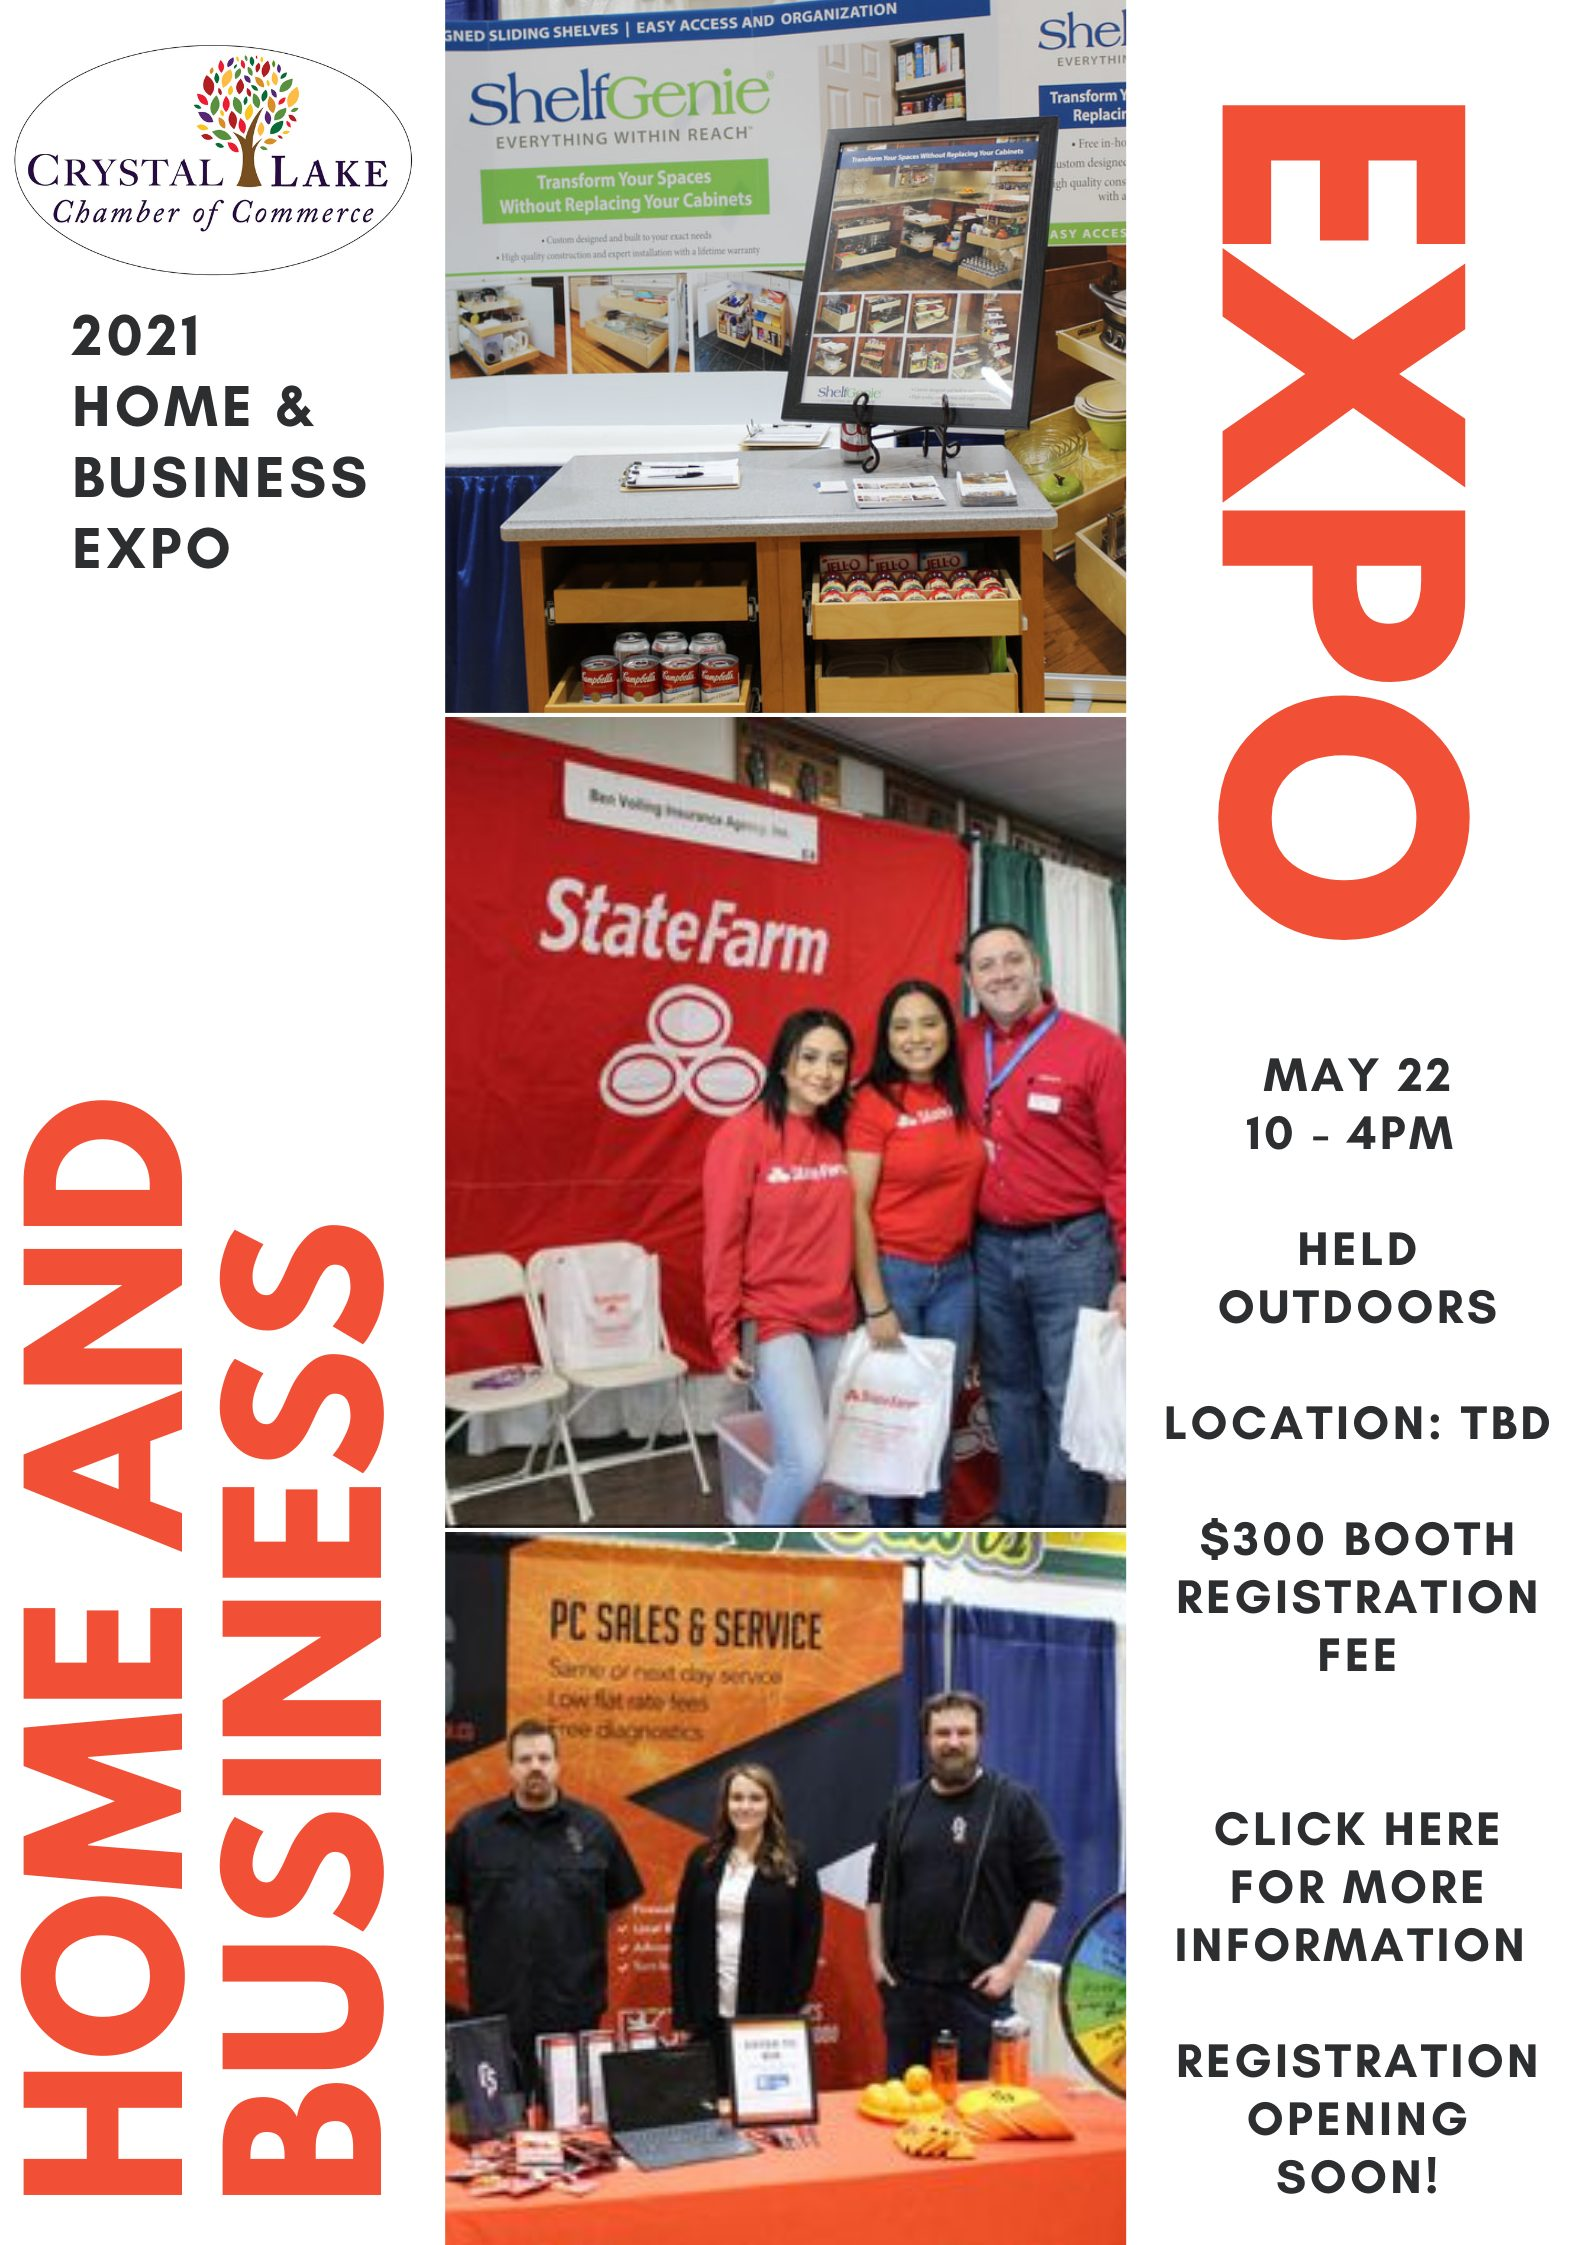 2021 home and business expo flyer(1)